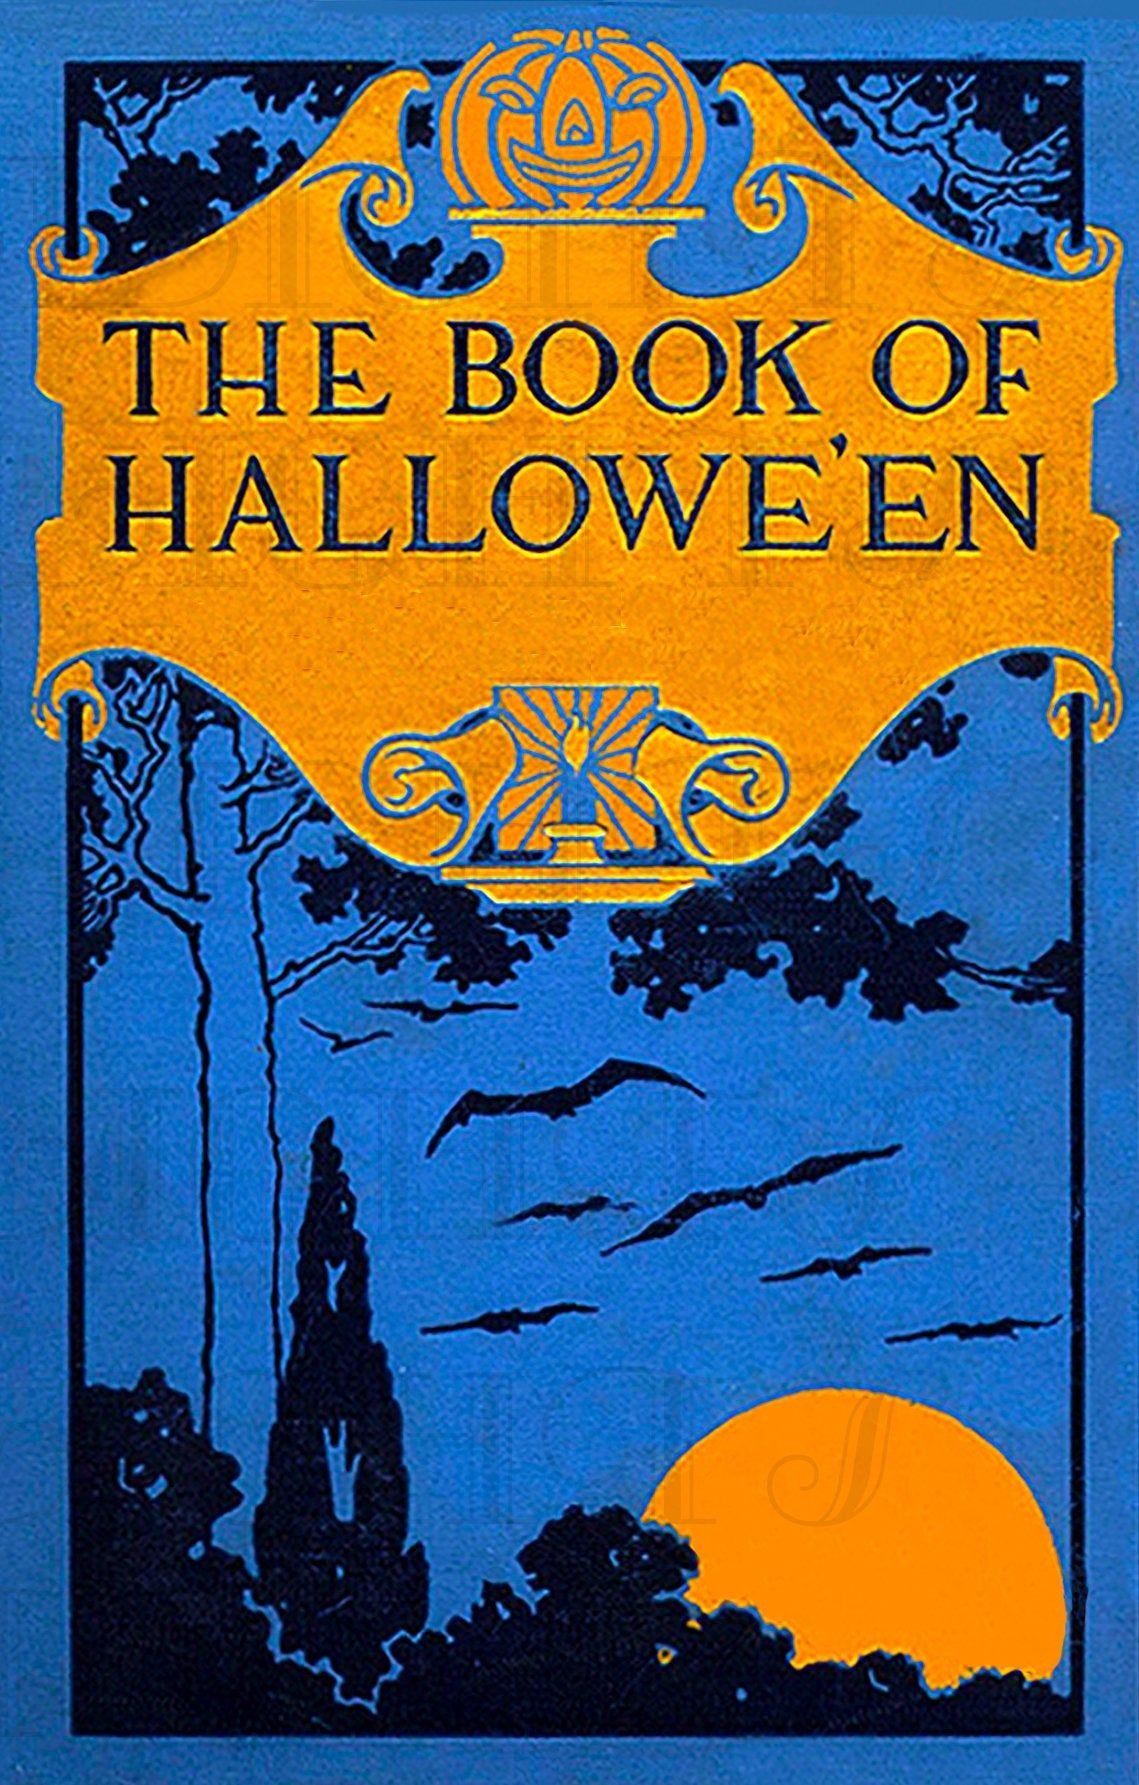 Halloween 2020 On Digital Download RARE The Book of Halloween Digital HALLOWEEN Download. | Etsy in